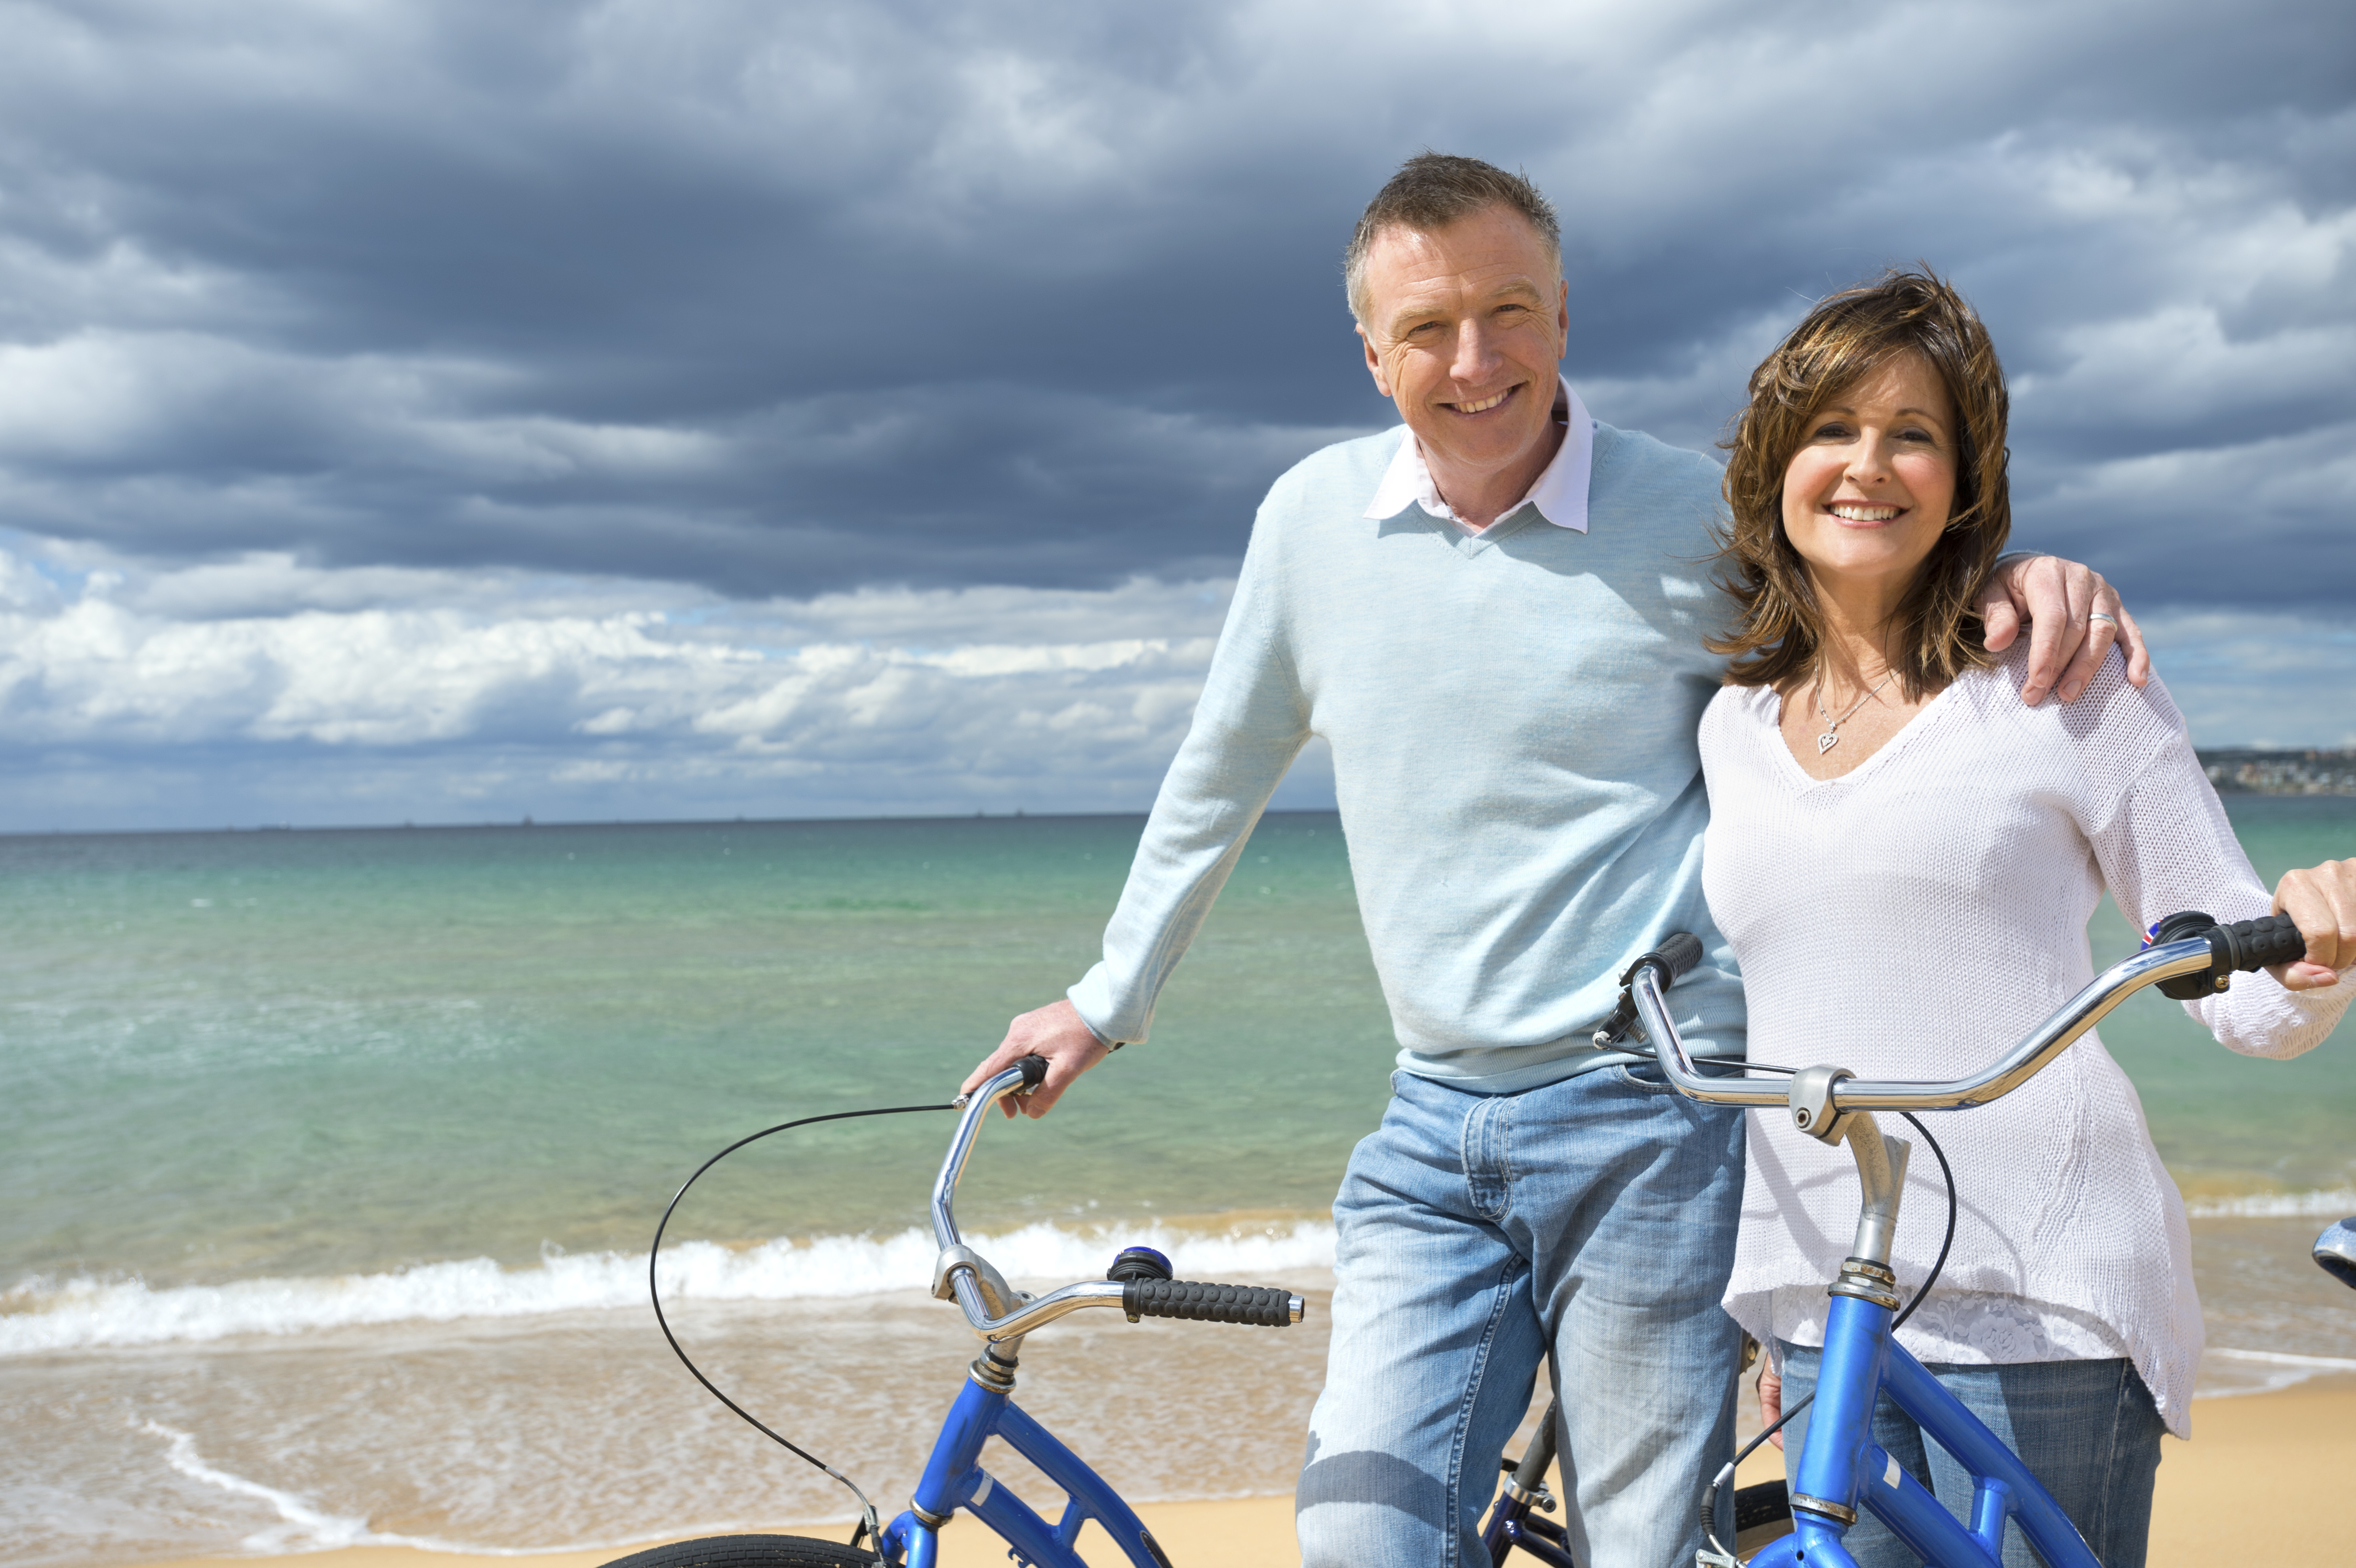 Mature couple cycling on the beach in the sunshine